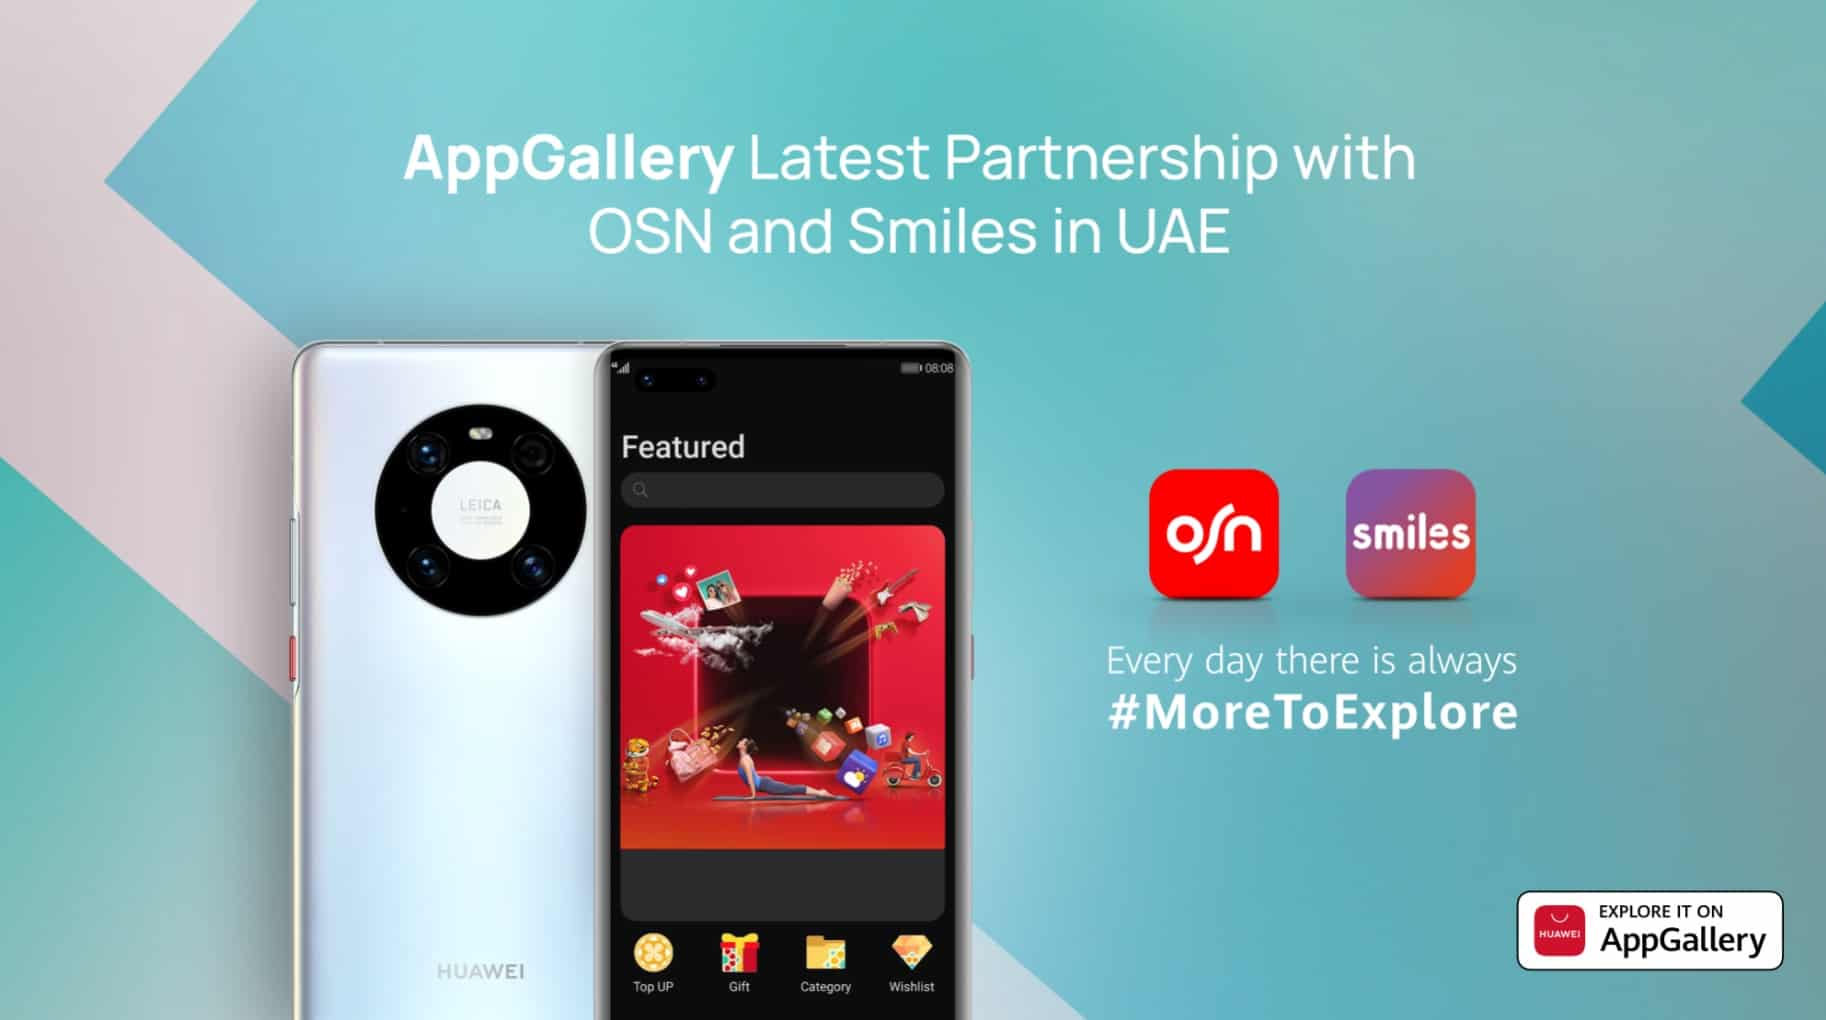 AppGallery launches a co-branded campaign with OSN and Smiles among UAE users